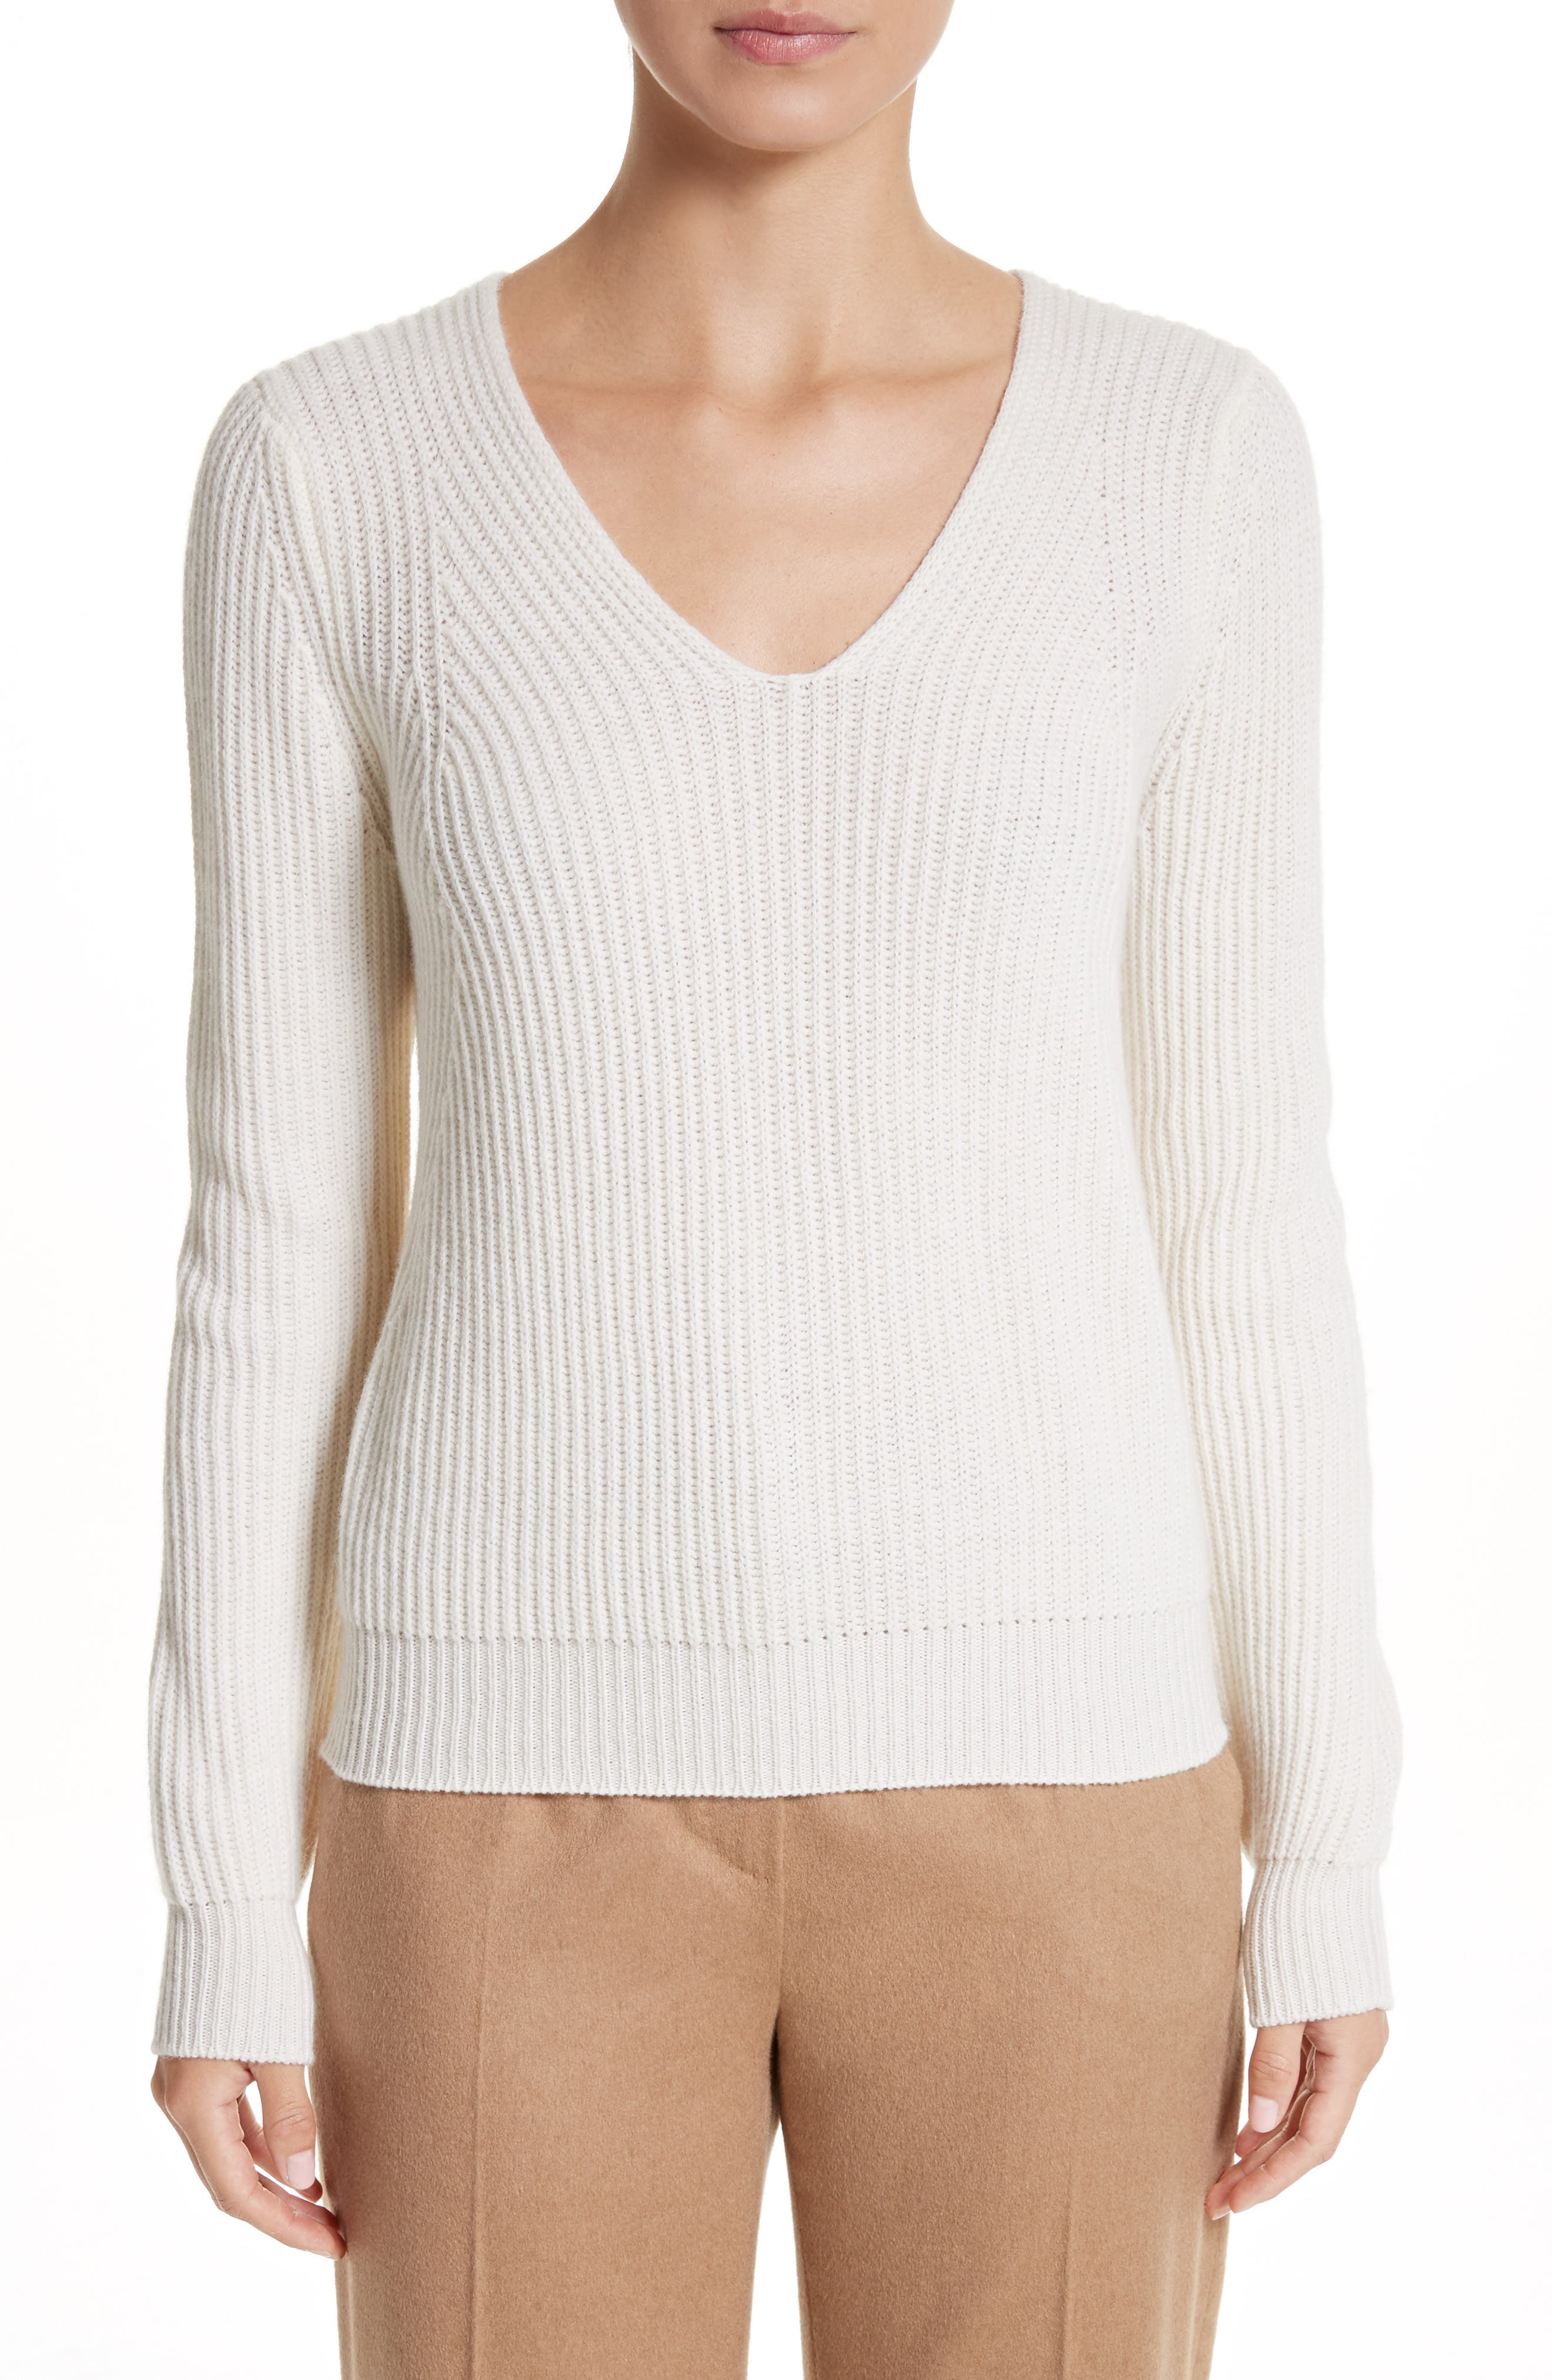 Sax Wool & Cashmere Sweater,                         Main,                         color, 900